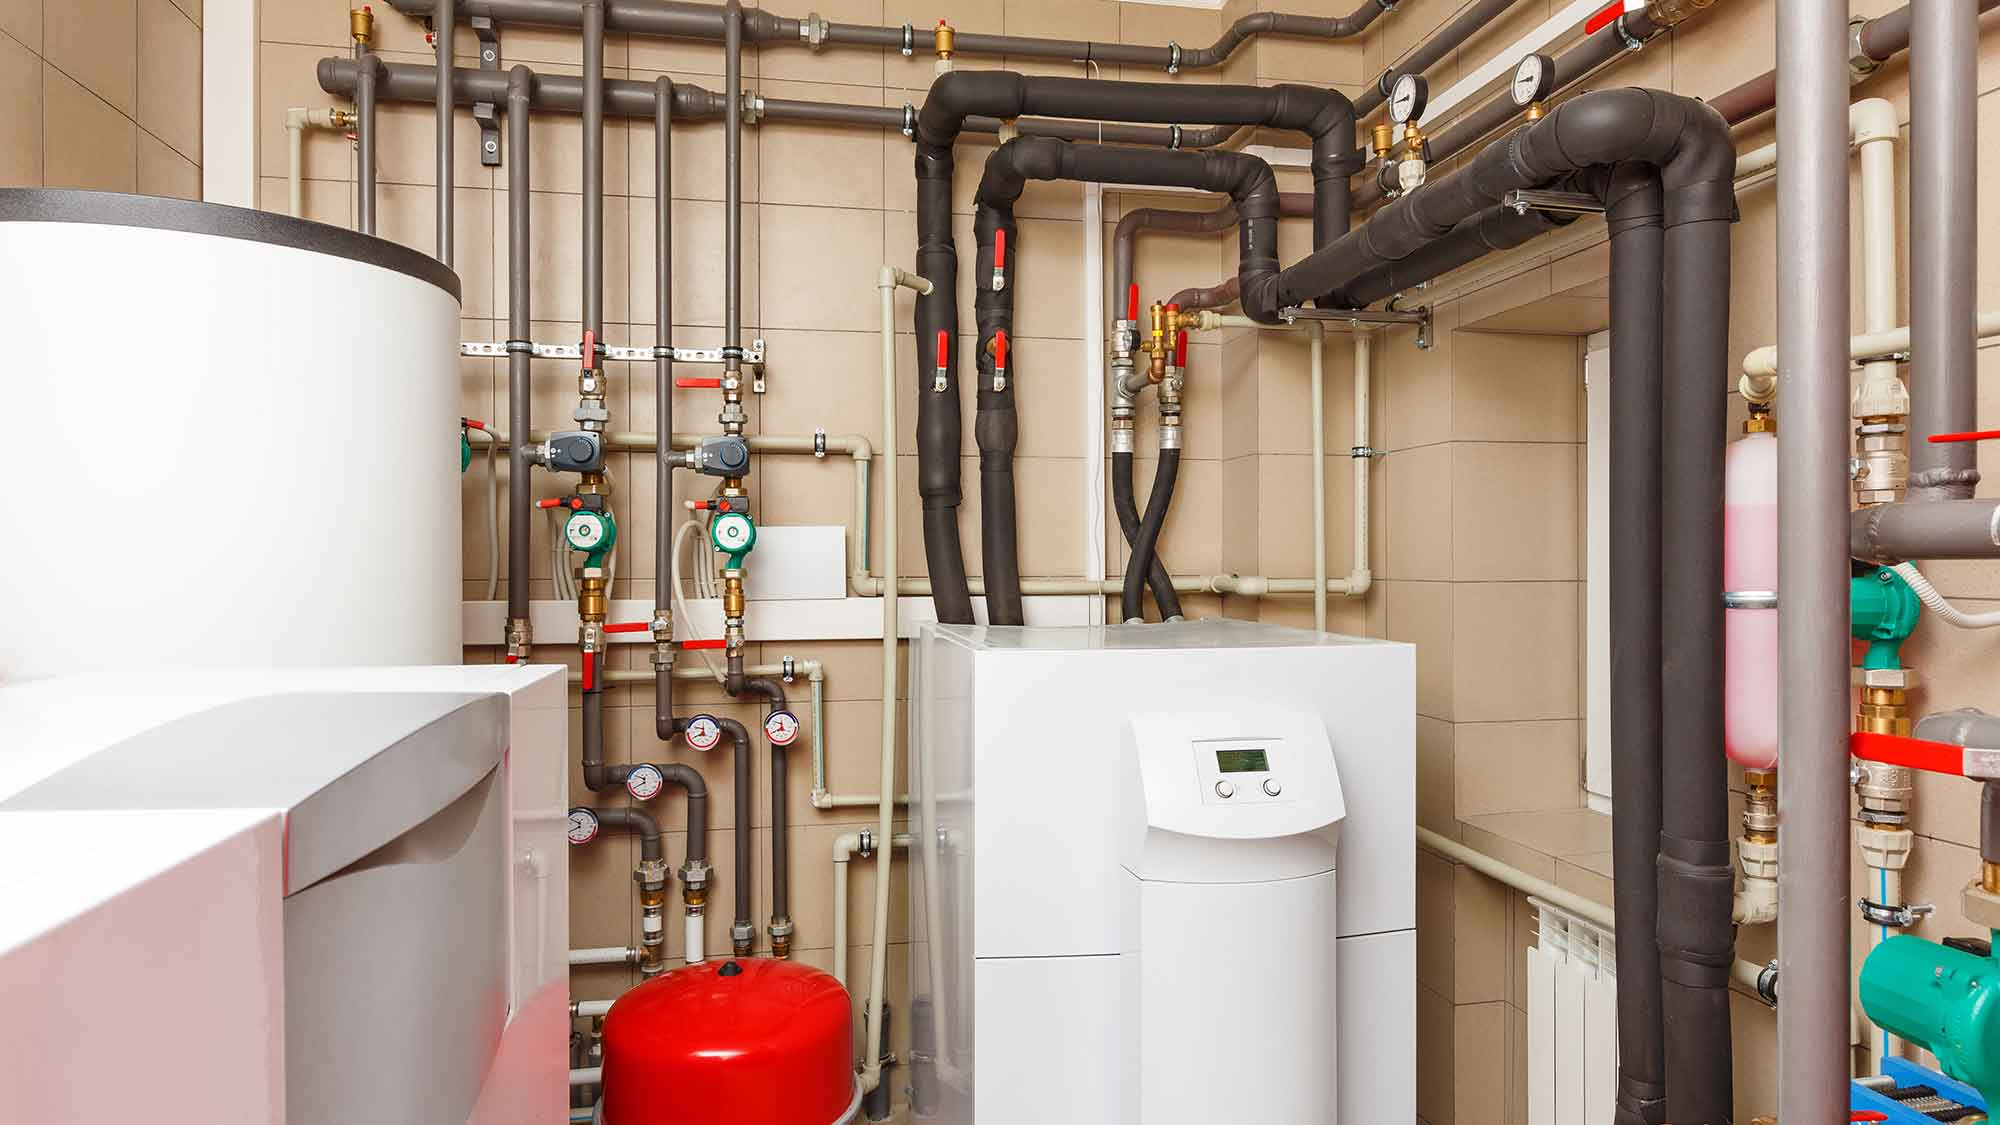 commercial boiler servicing essex maintenance leigh on sea room